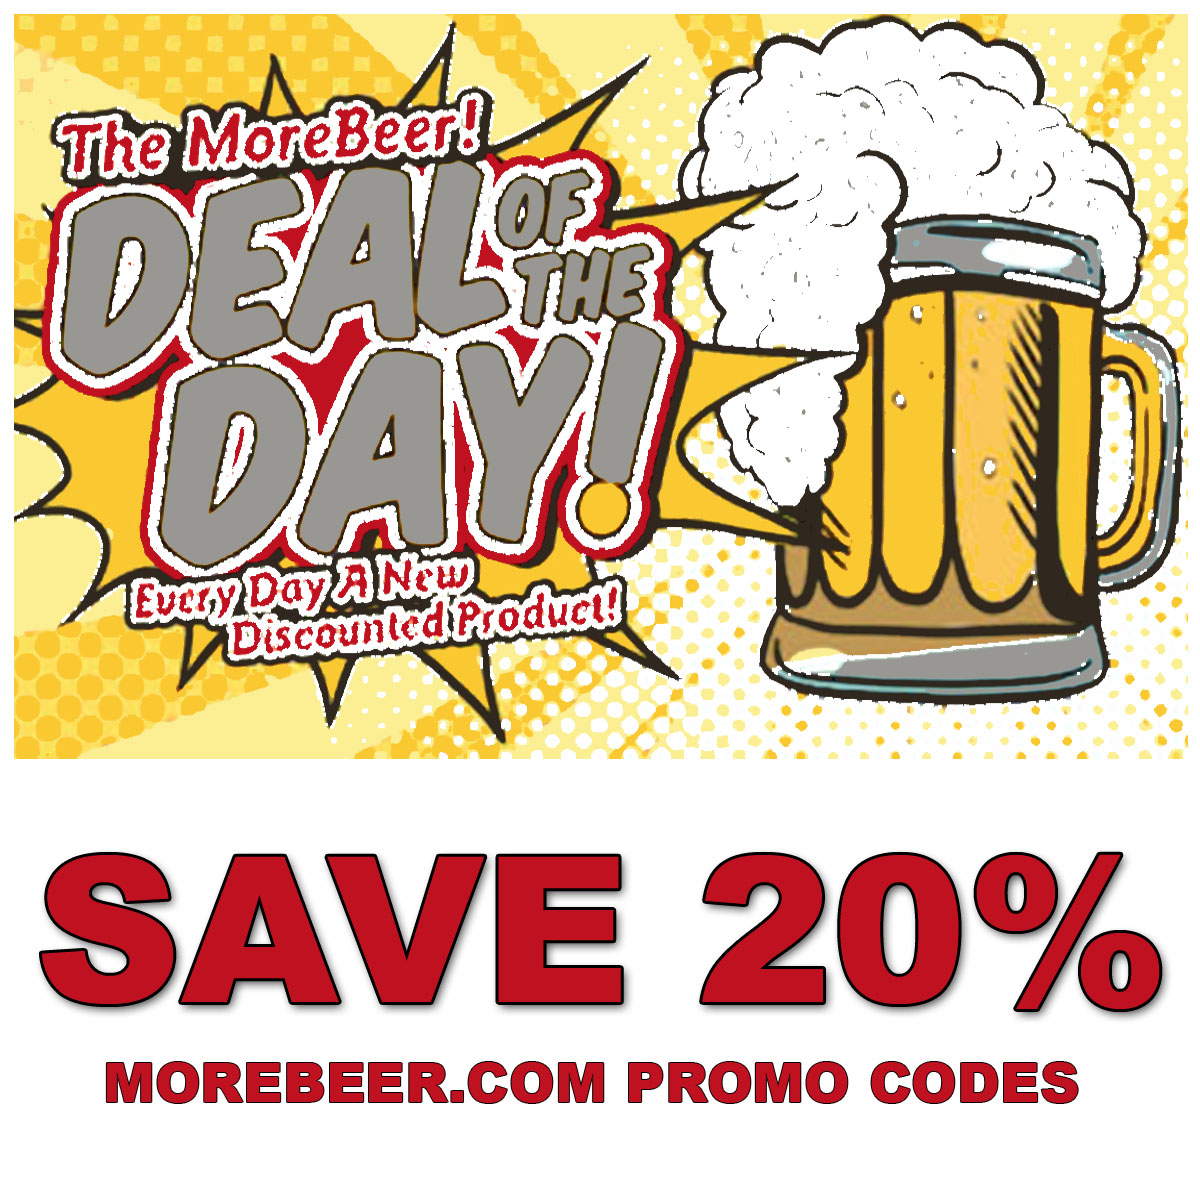 Deal of the Day at MoreBeer.com - SAVE 20% OR MORE with this MoreBeer.com Coupon Code Coupon Code